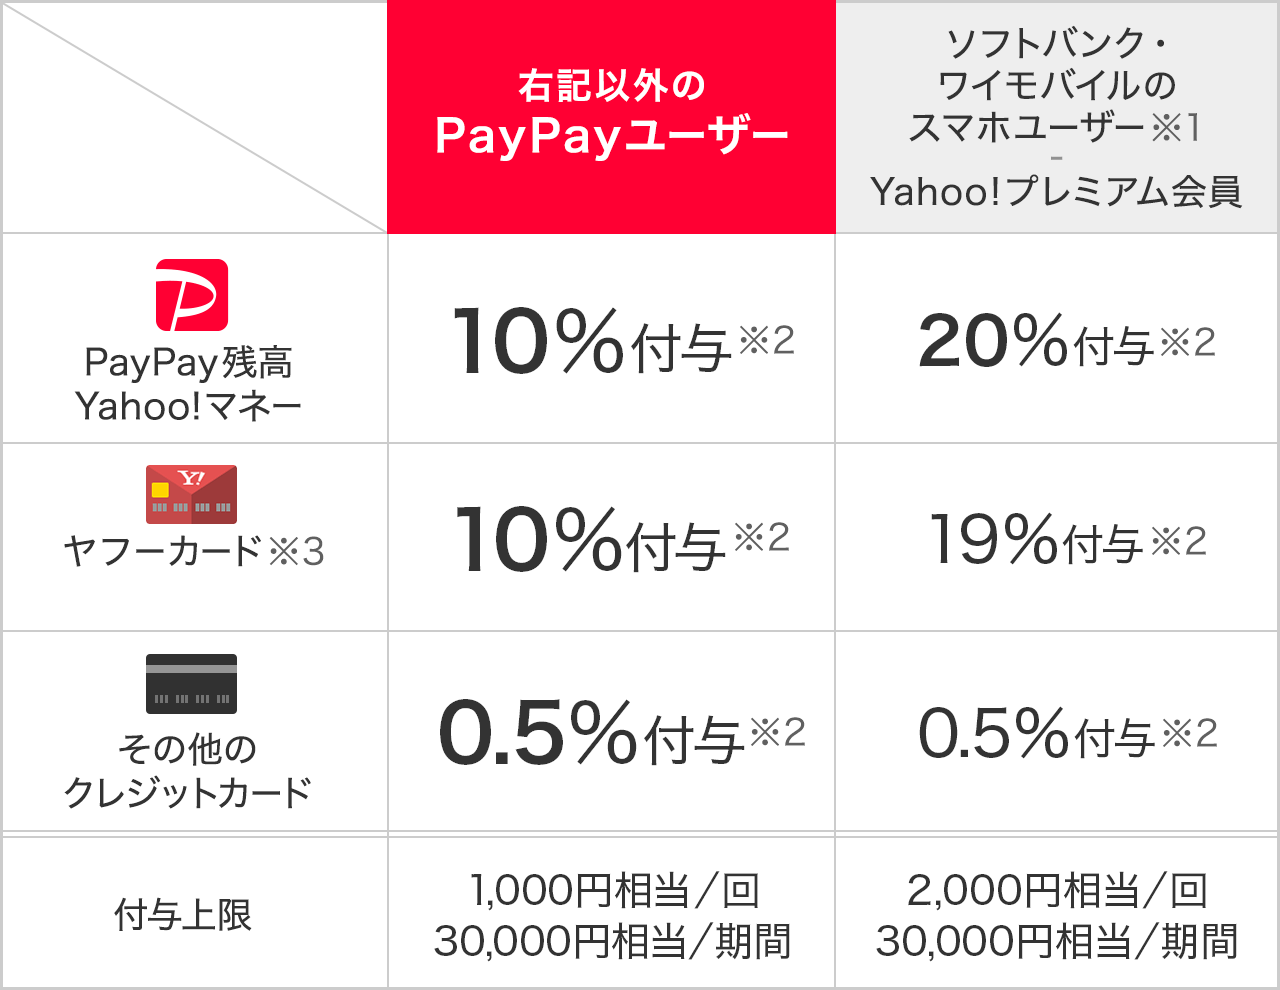 https://image.paypay.ne.jp/page/event/lunch/images/img_table_01.png